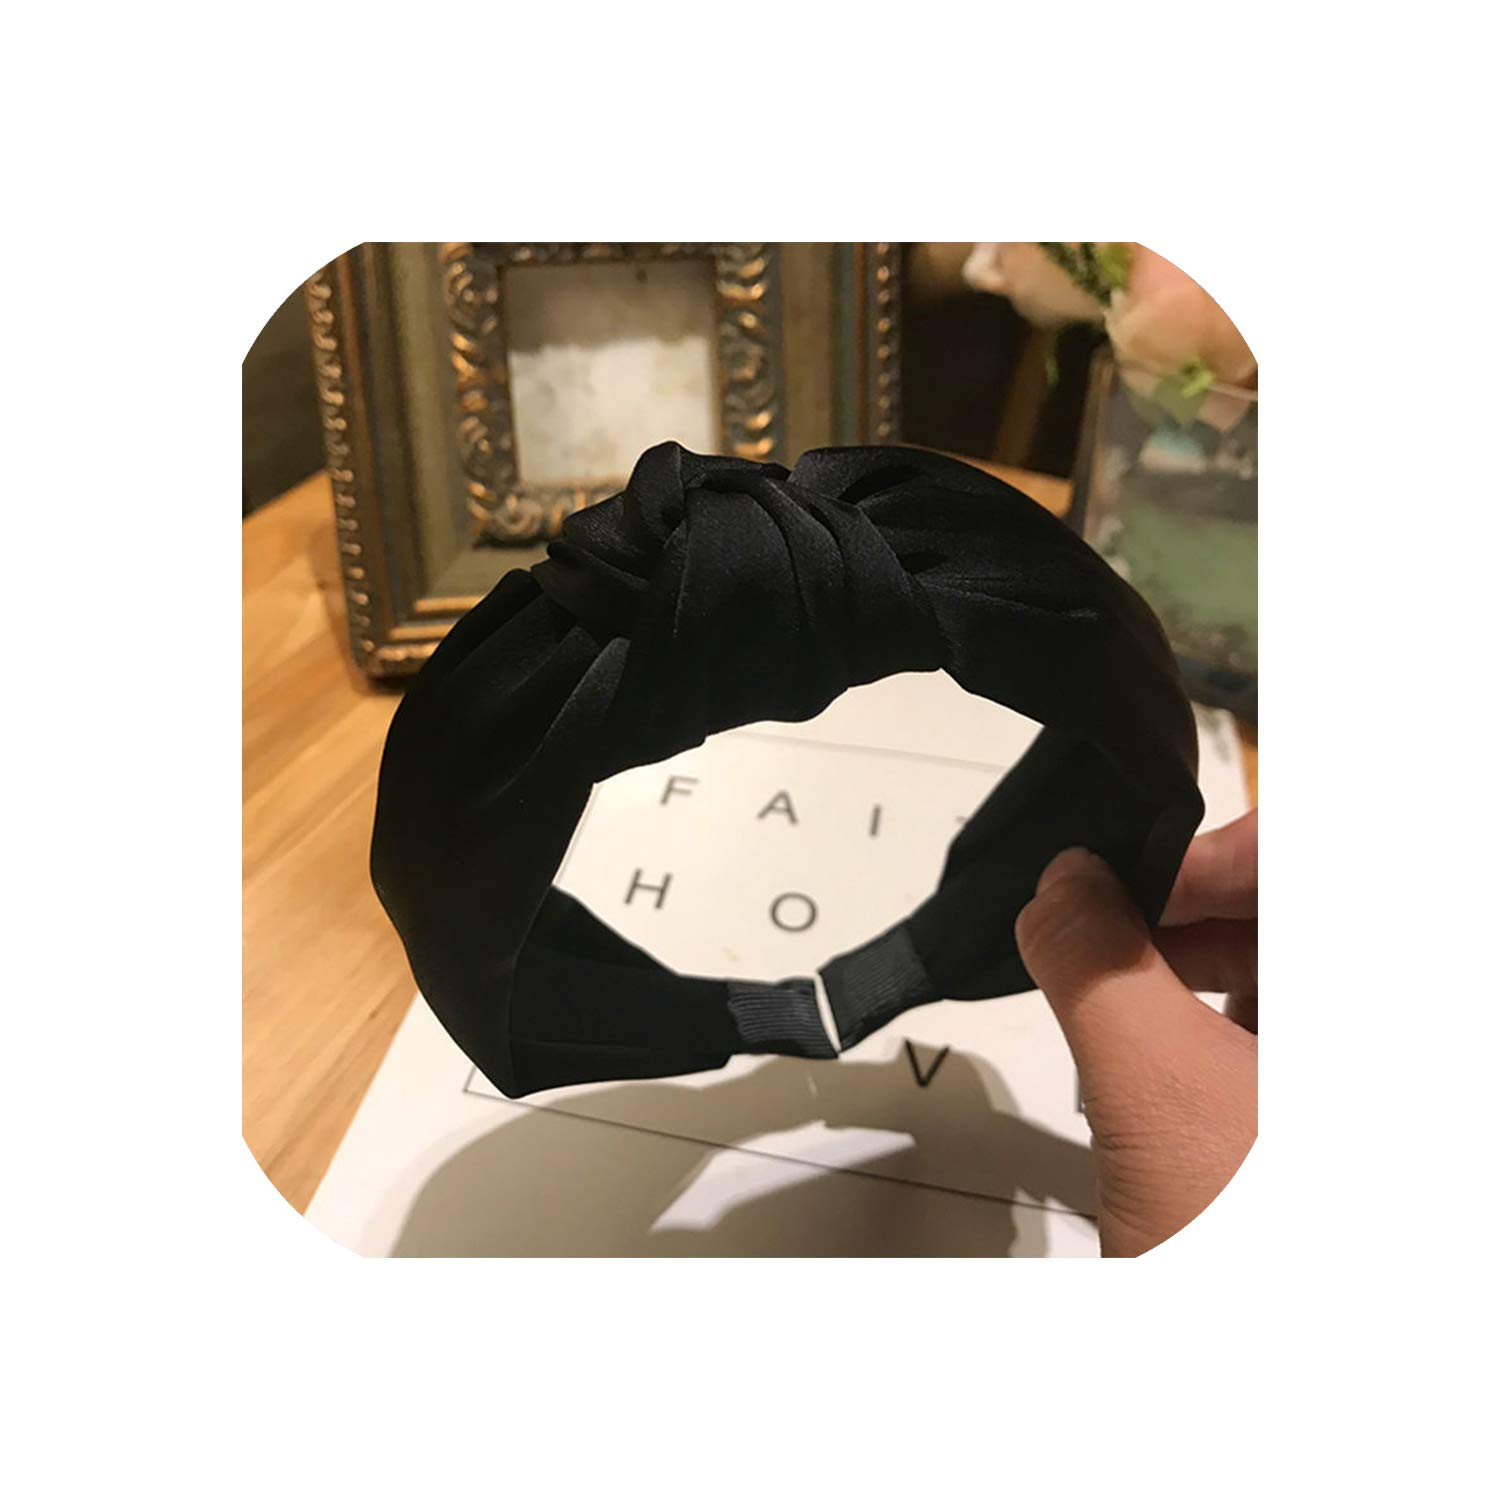 2019 New Arrival Women Girl Fashion Hair band Solid Colors Hair Knotted Head Band for Women Headbands Hairbands Headwear,R